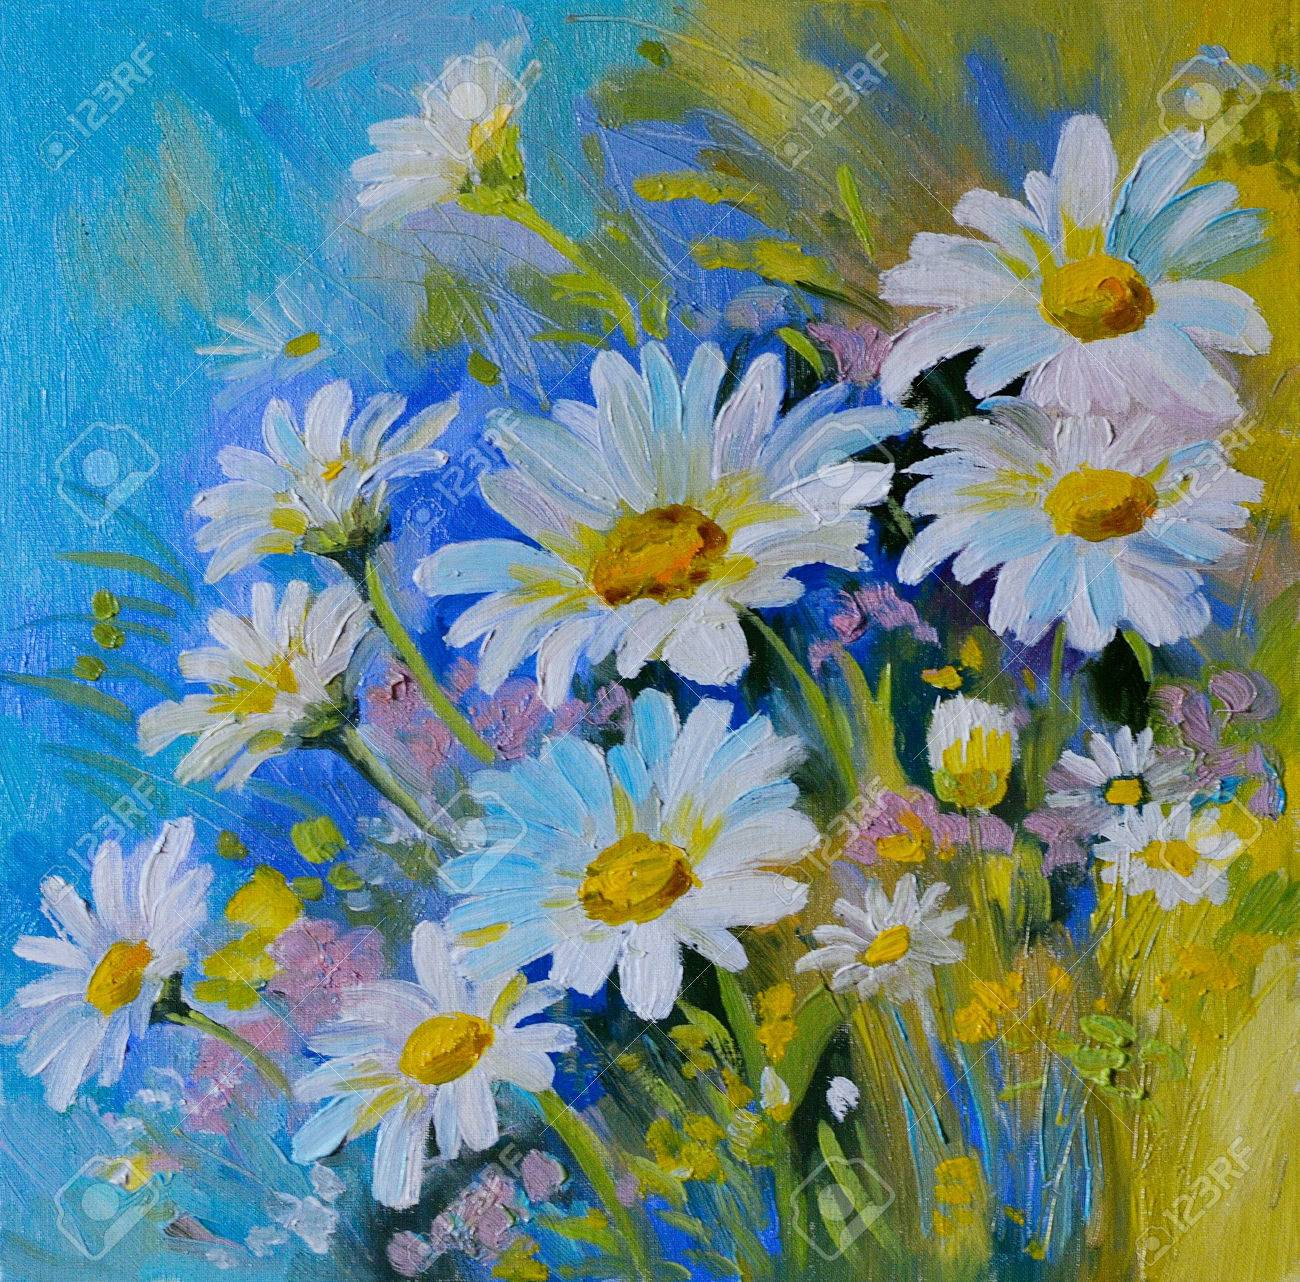 Oil painting abstract illustration of flowers daisies greens oil painting abstract illustration of flowers daisies greens spring stock illustration izmirmasajfo Choice Image